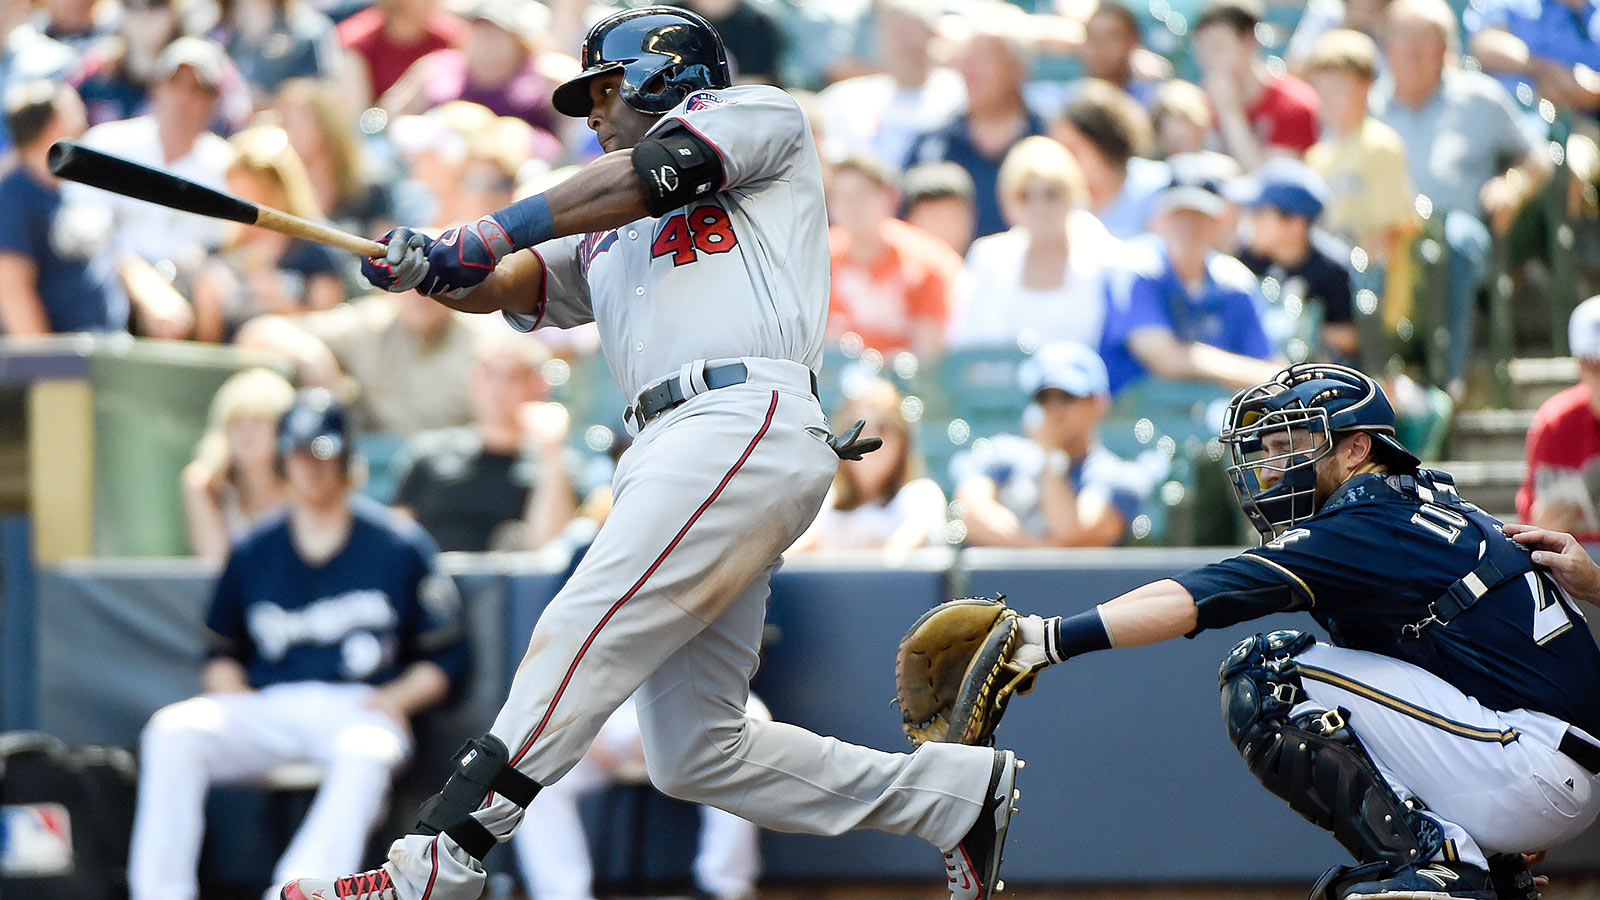 Hunter homers twice as Twins get better of Brewers